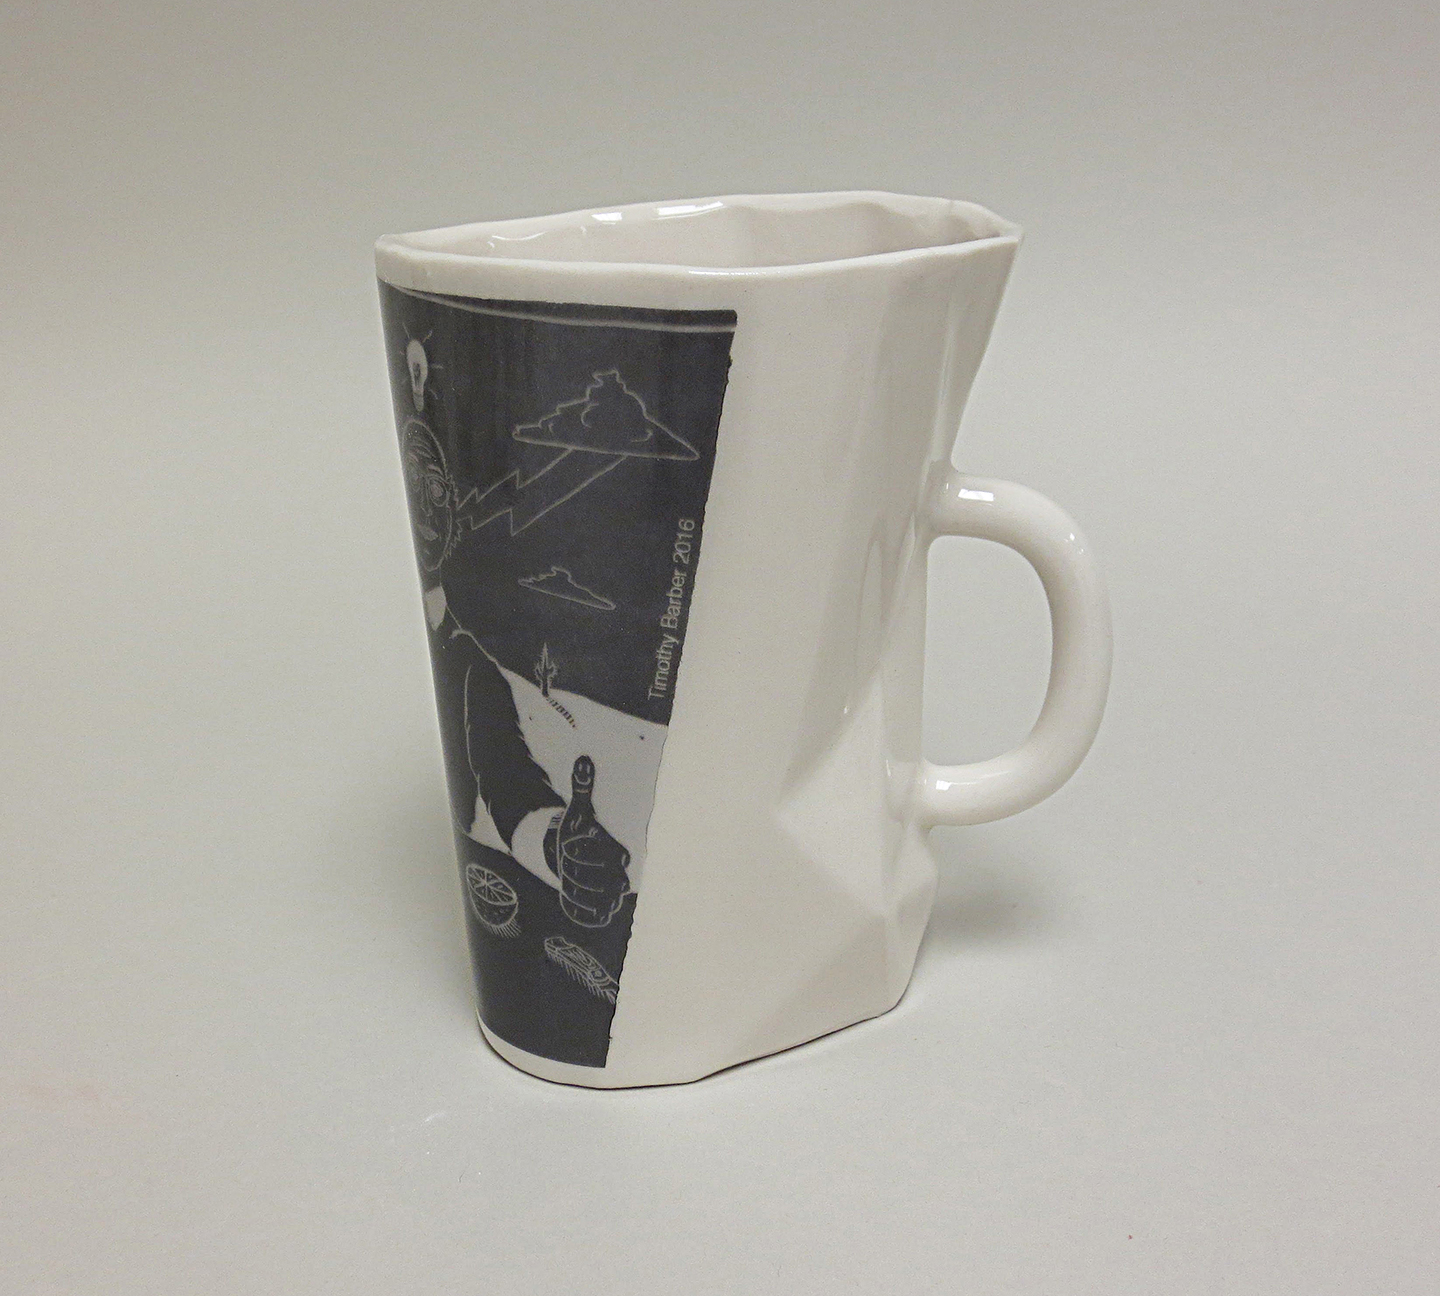 Collabo Cup 1st generation: Tim (right view)